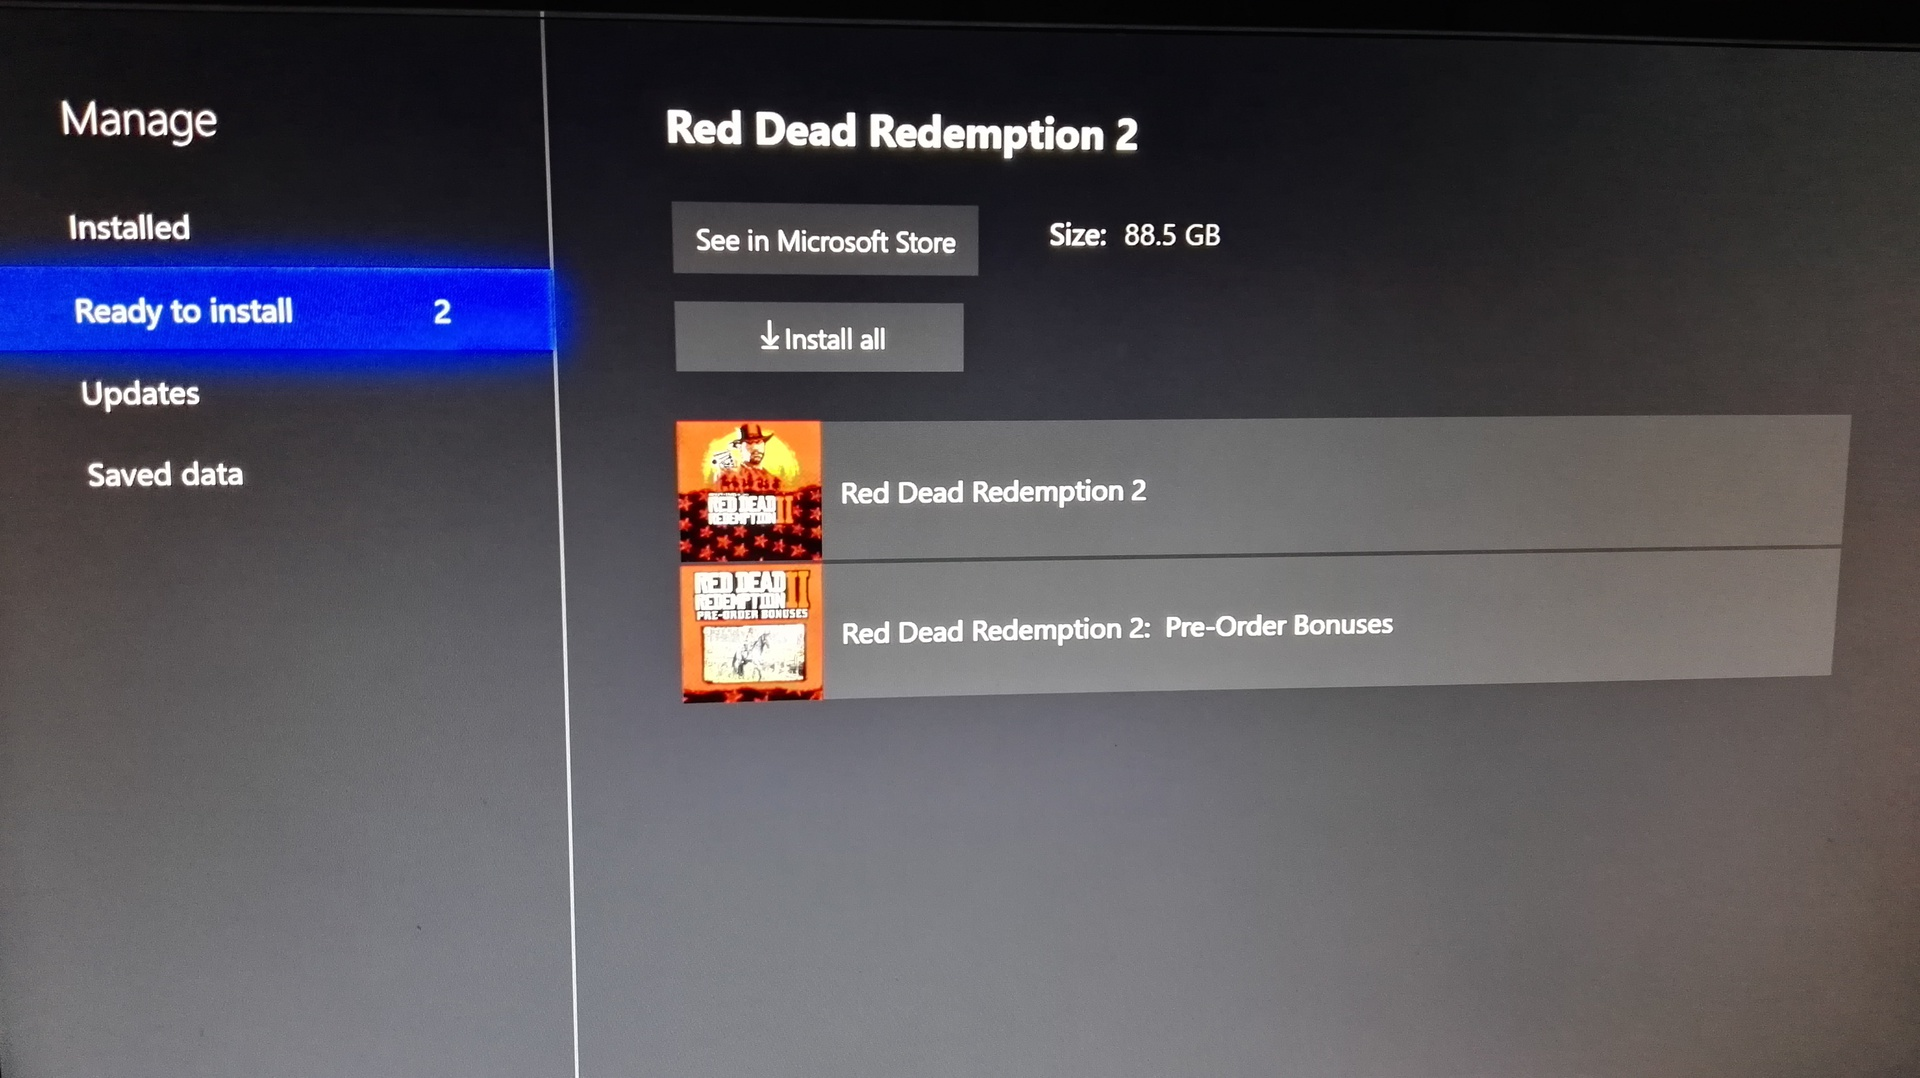 red dead redemption 2 xbox one size